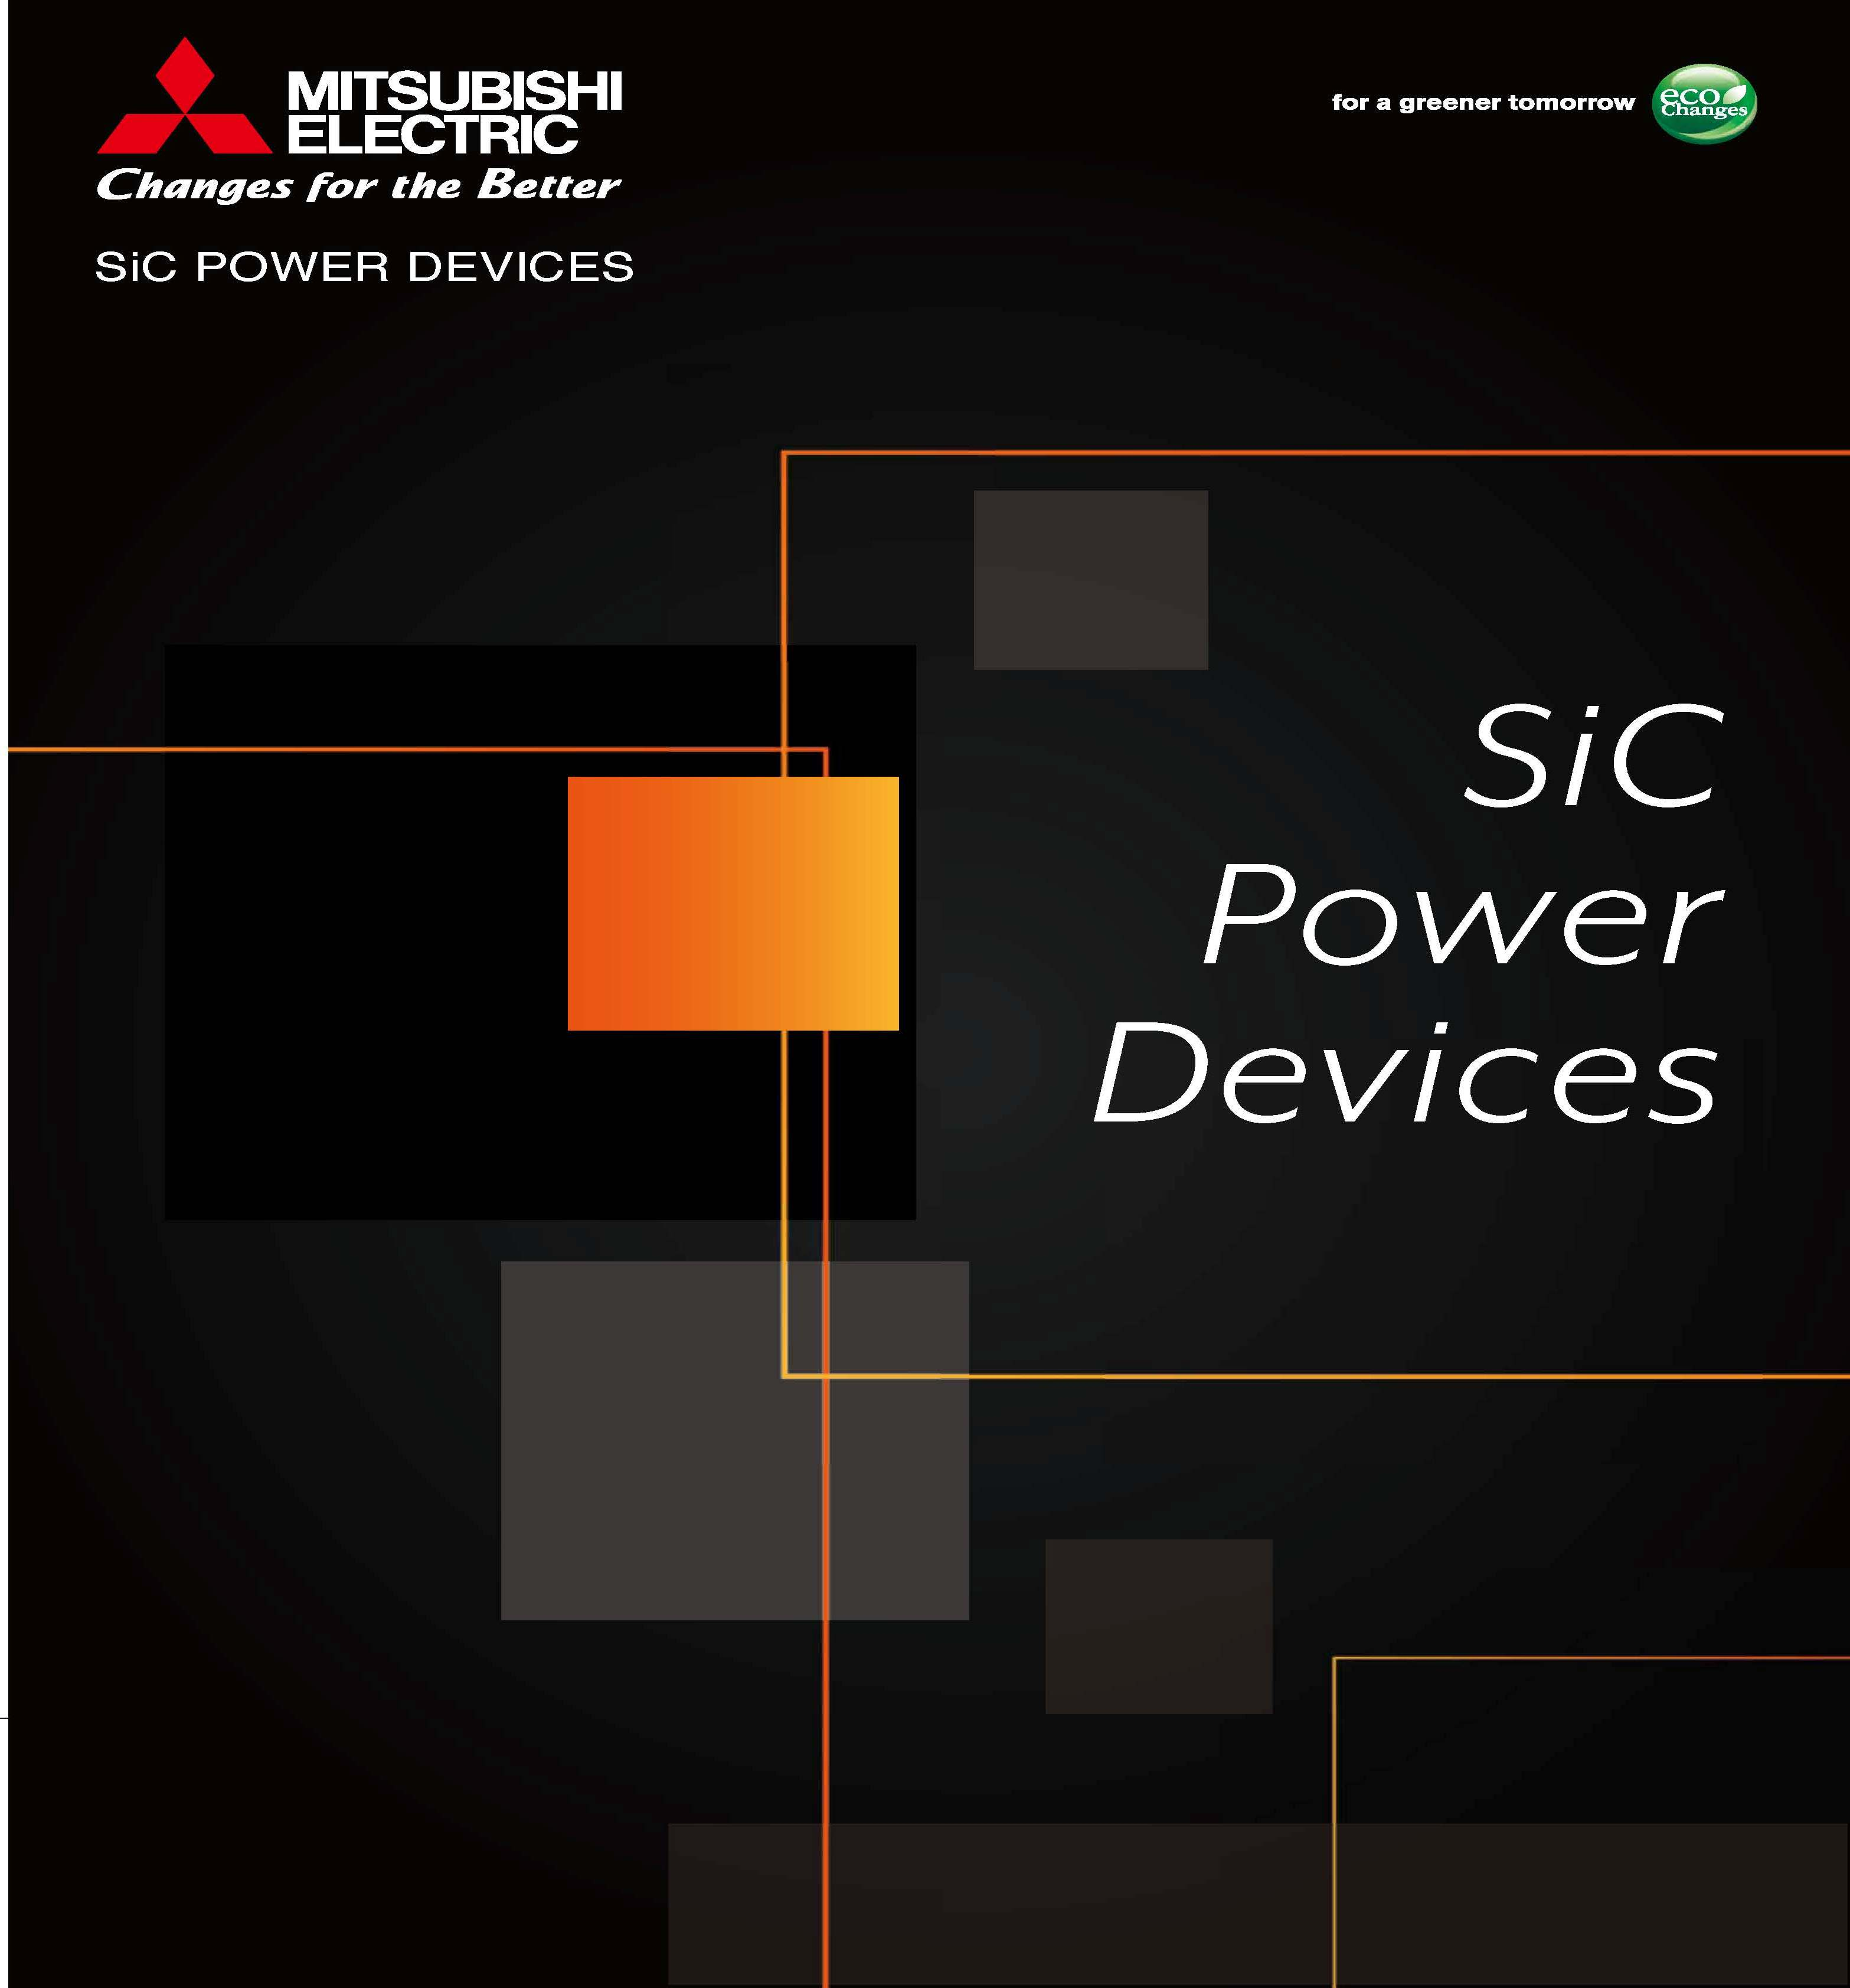 Mitsubishi SiC Power Devices